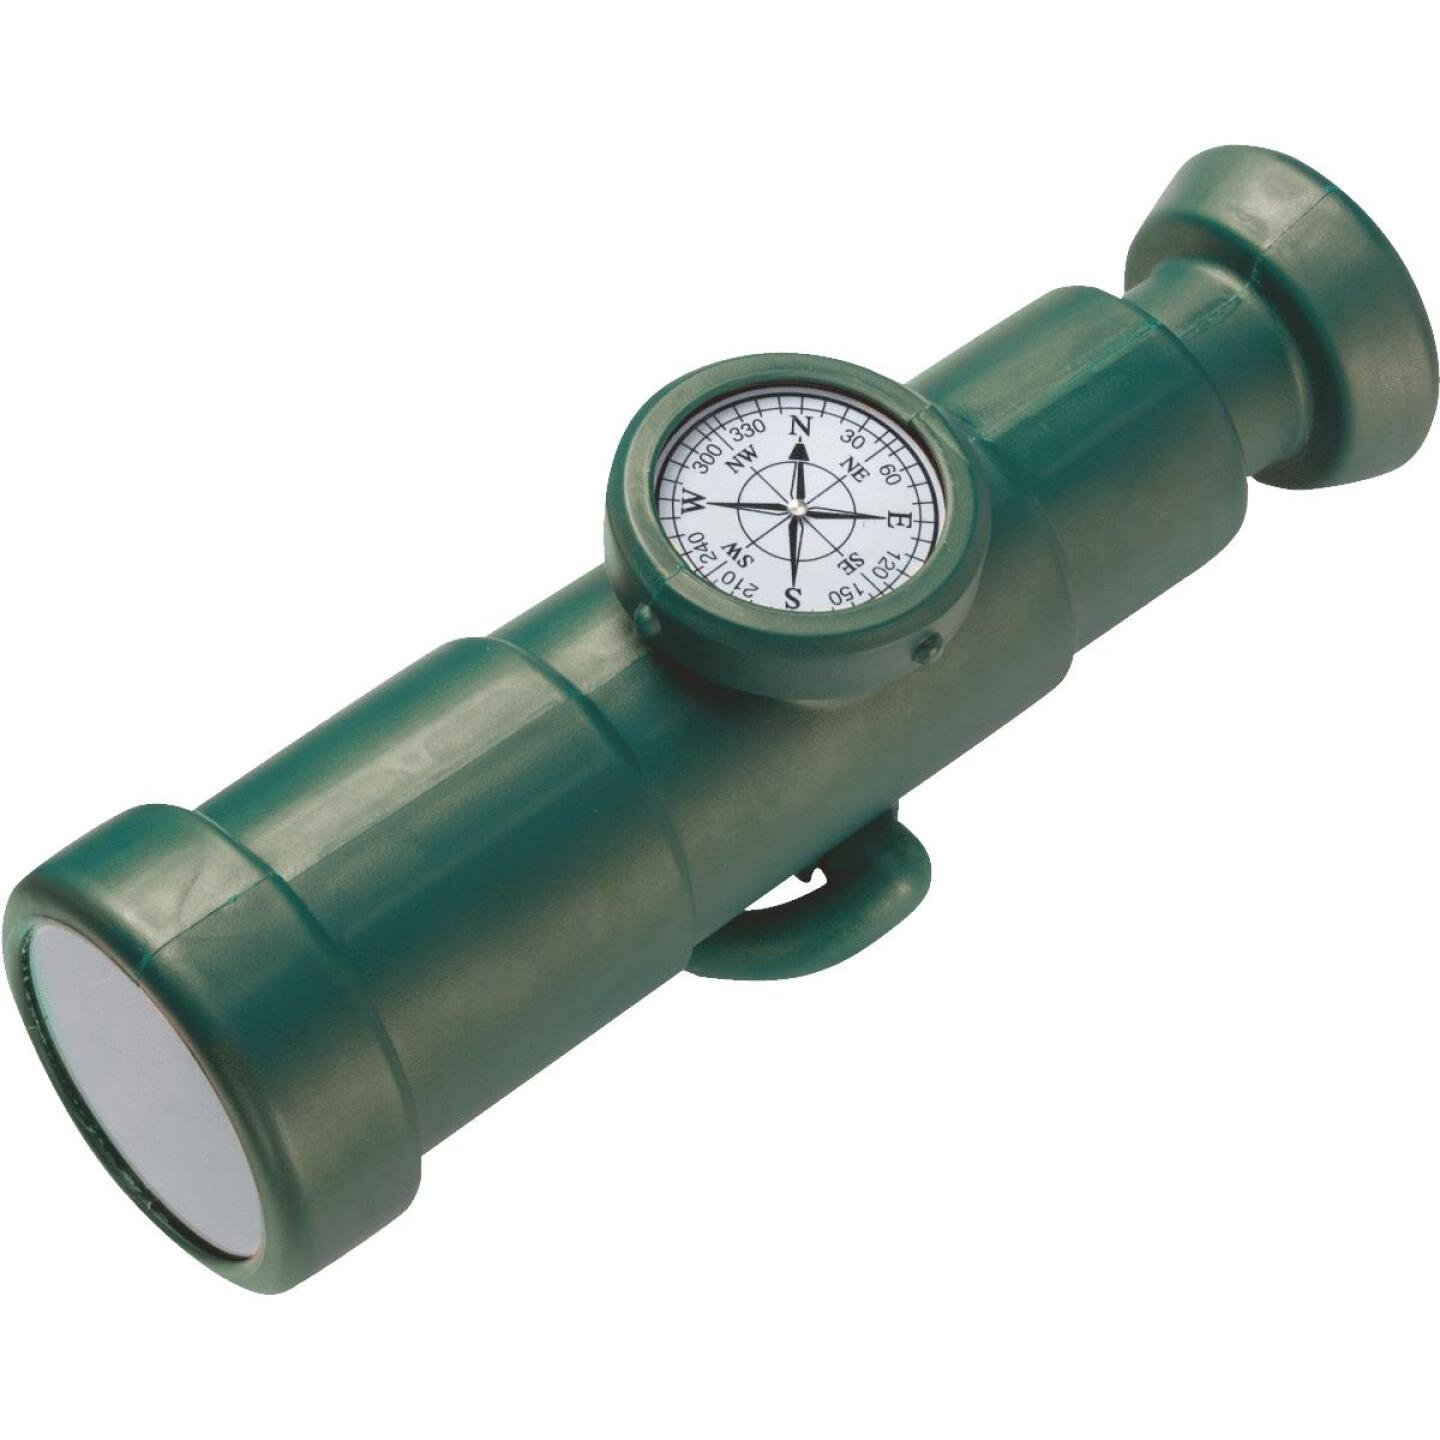 Swing N Slide Green Plastic Playground Telescope with Compass Image 1